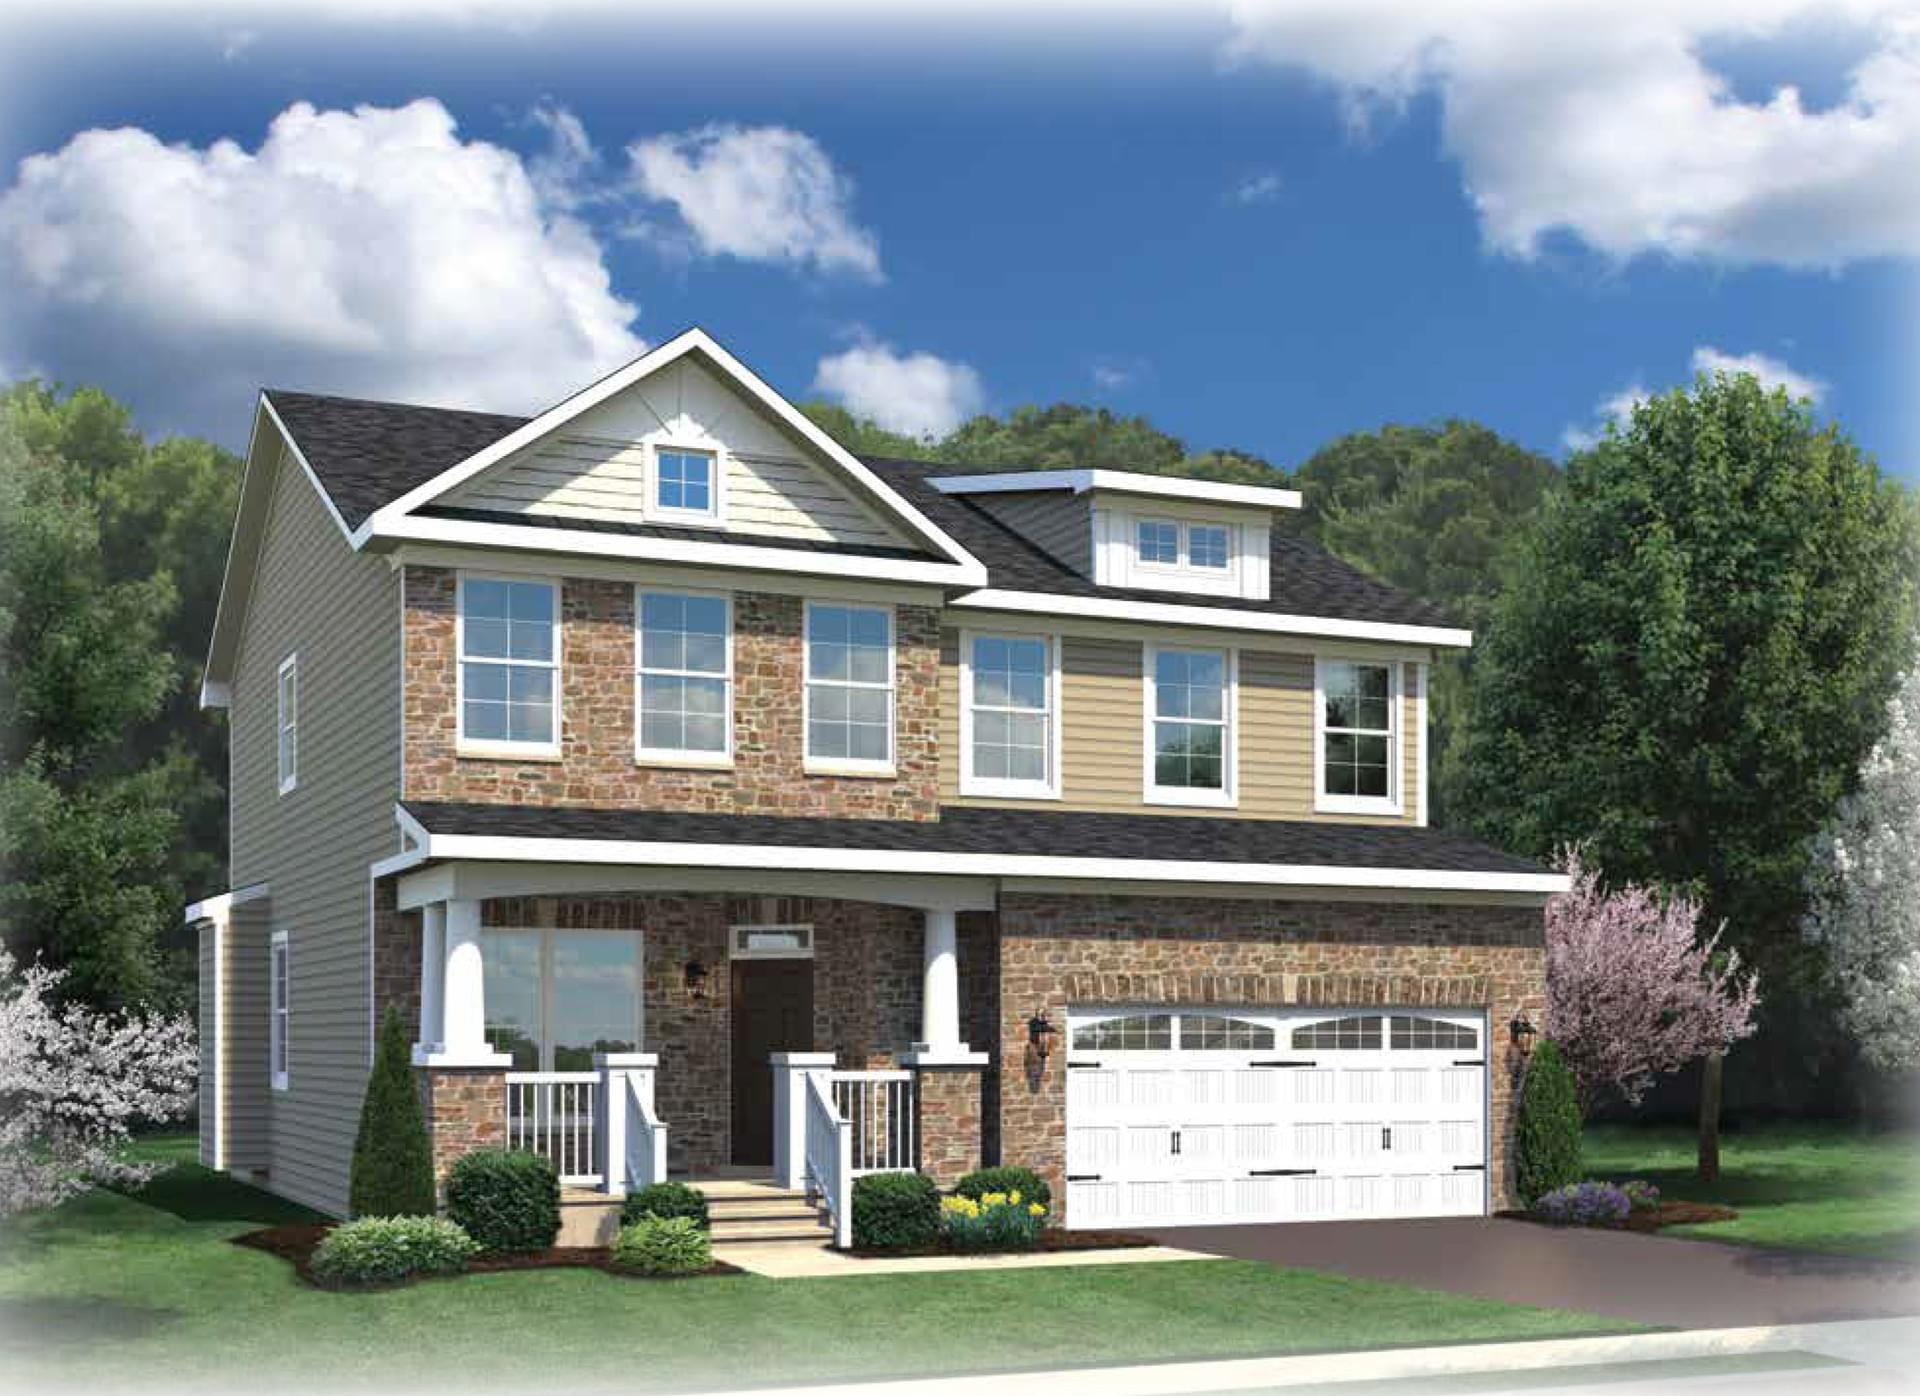 The Yorktown New Home In Pasadena Md Harvest Ridge From